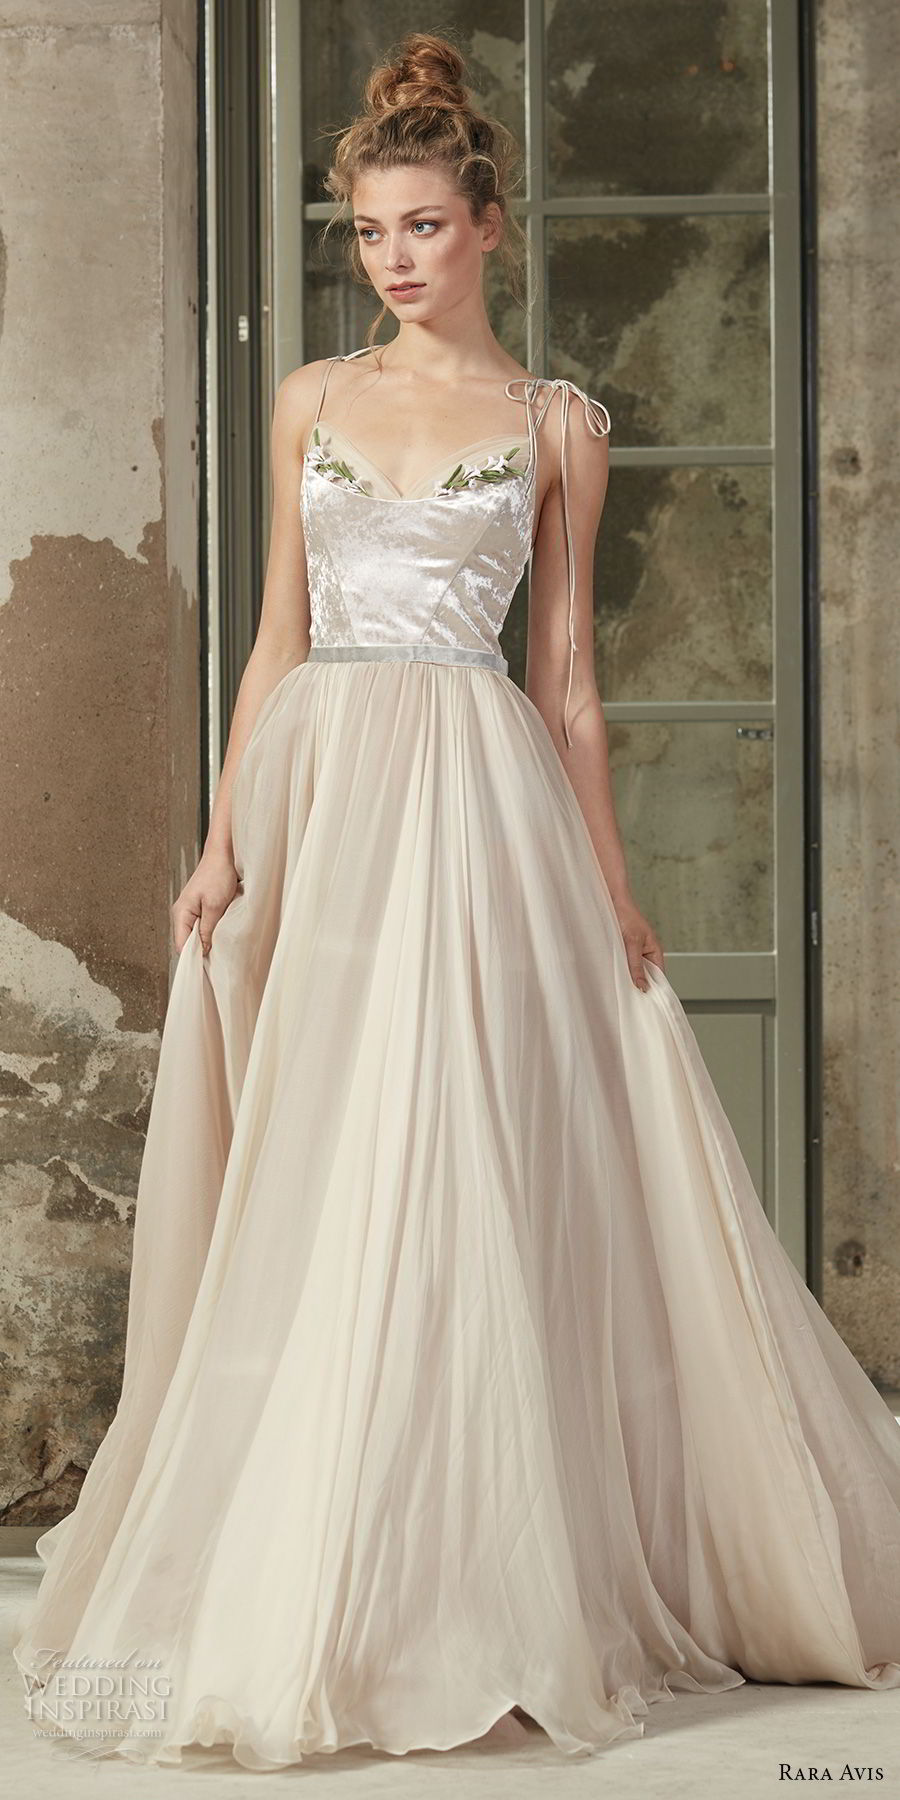 rara avis 2017 bridal sleeveless thin strap sweetheart neckline satin bodice tulle skirt romantic a line wedding dress medium train (20) mv